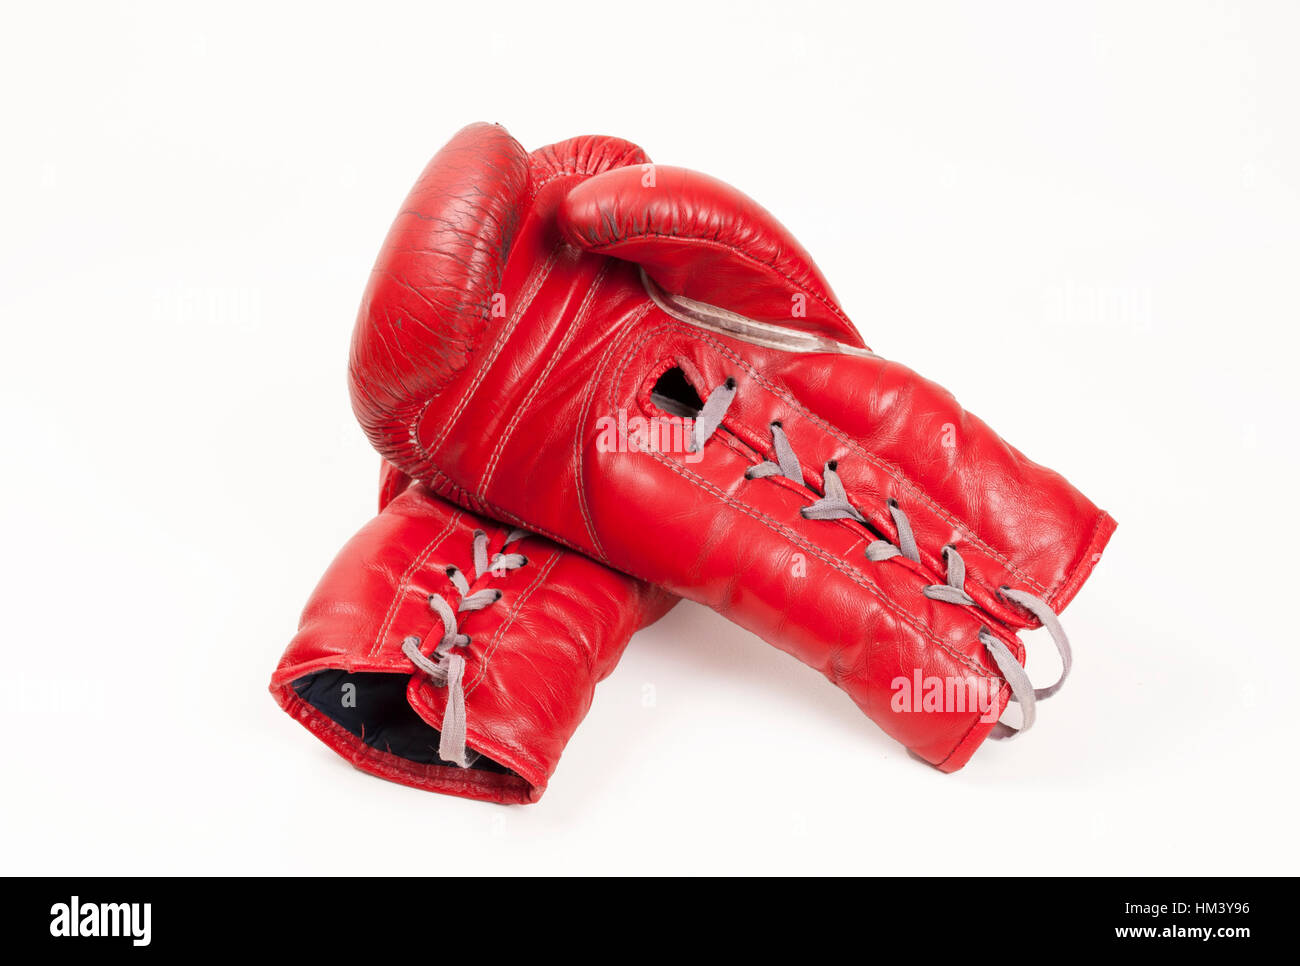 old used red leather boxing gloves putting hands together, isolated on white background Stock Photo